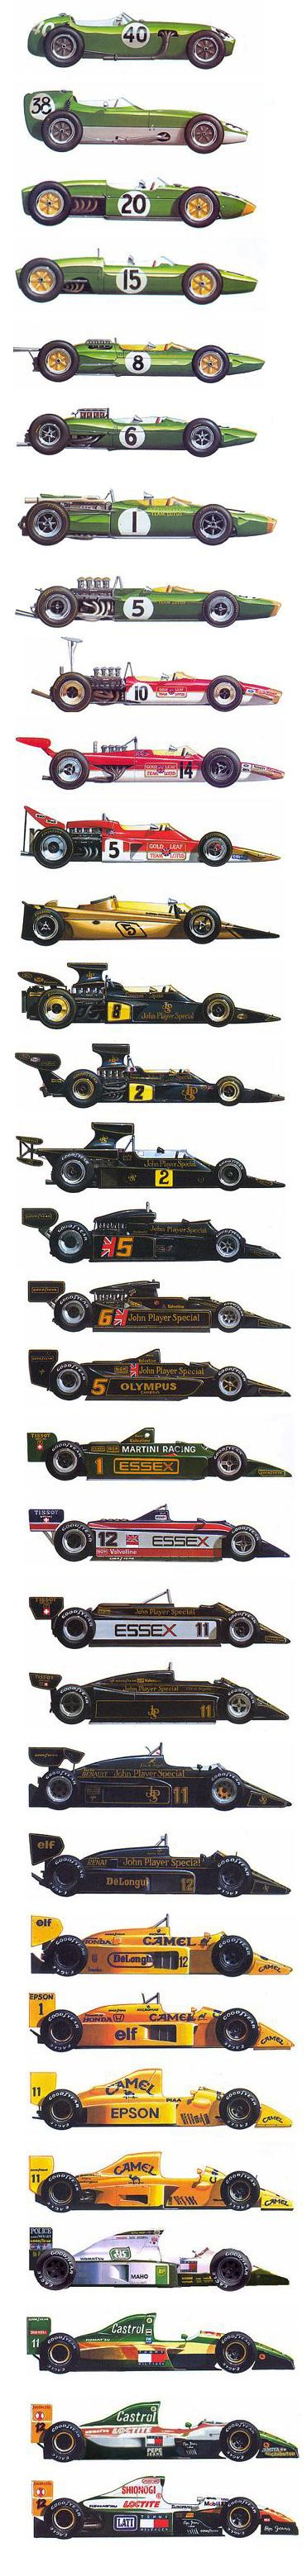 Lotus, history of Formula 1                                                                                                                                                      More